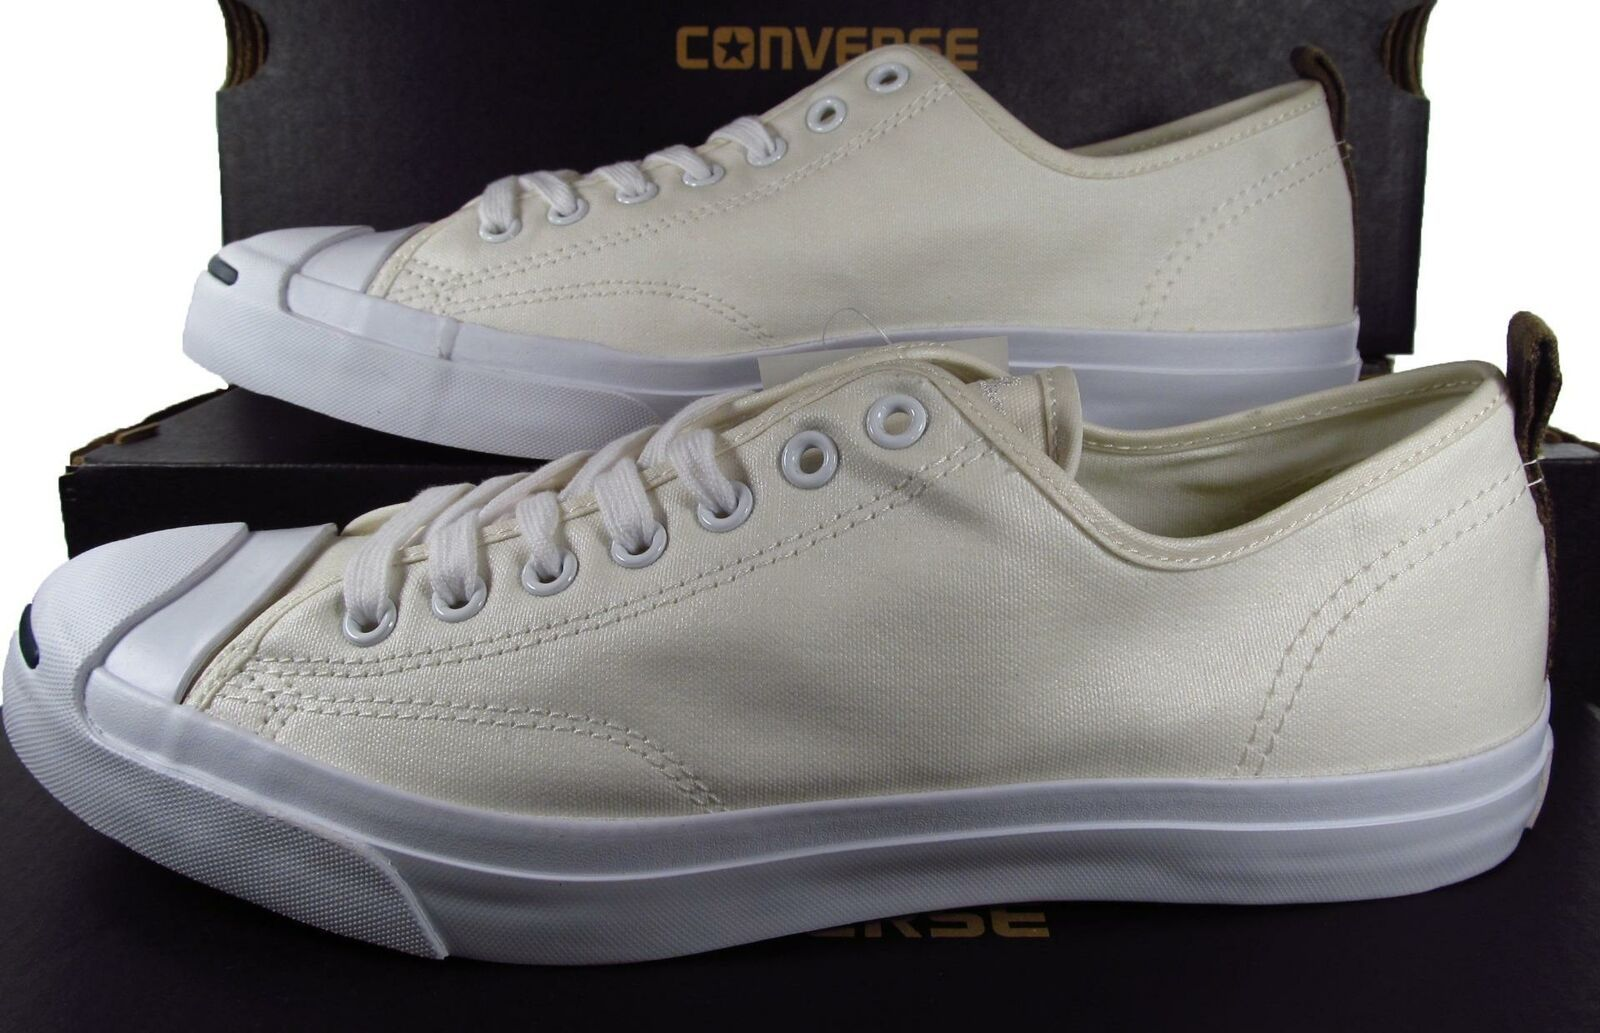 Converse Jack Purcell JP JACK OX Nylon WHITE Lunarlon Sole 151481C (10.5 MEN'S)